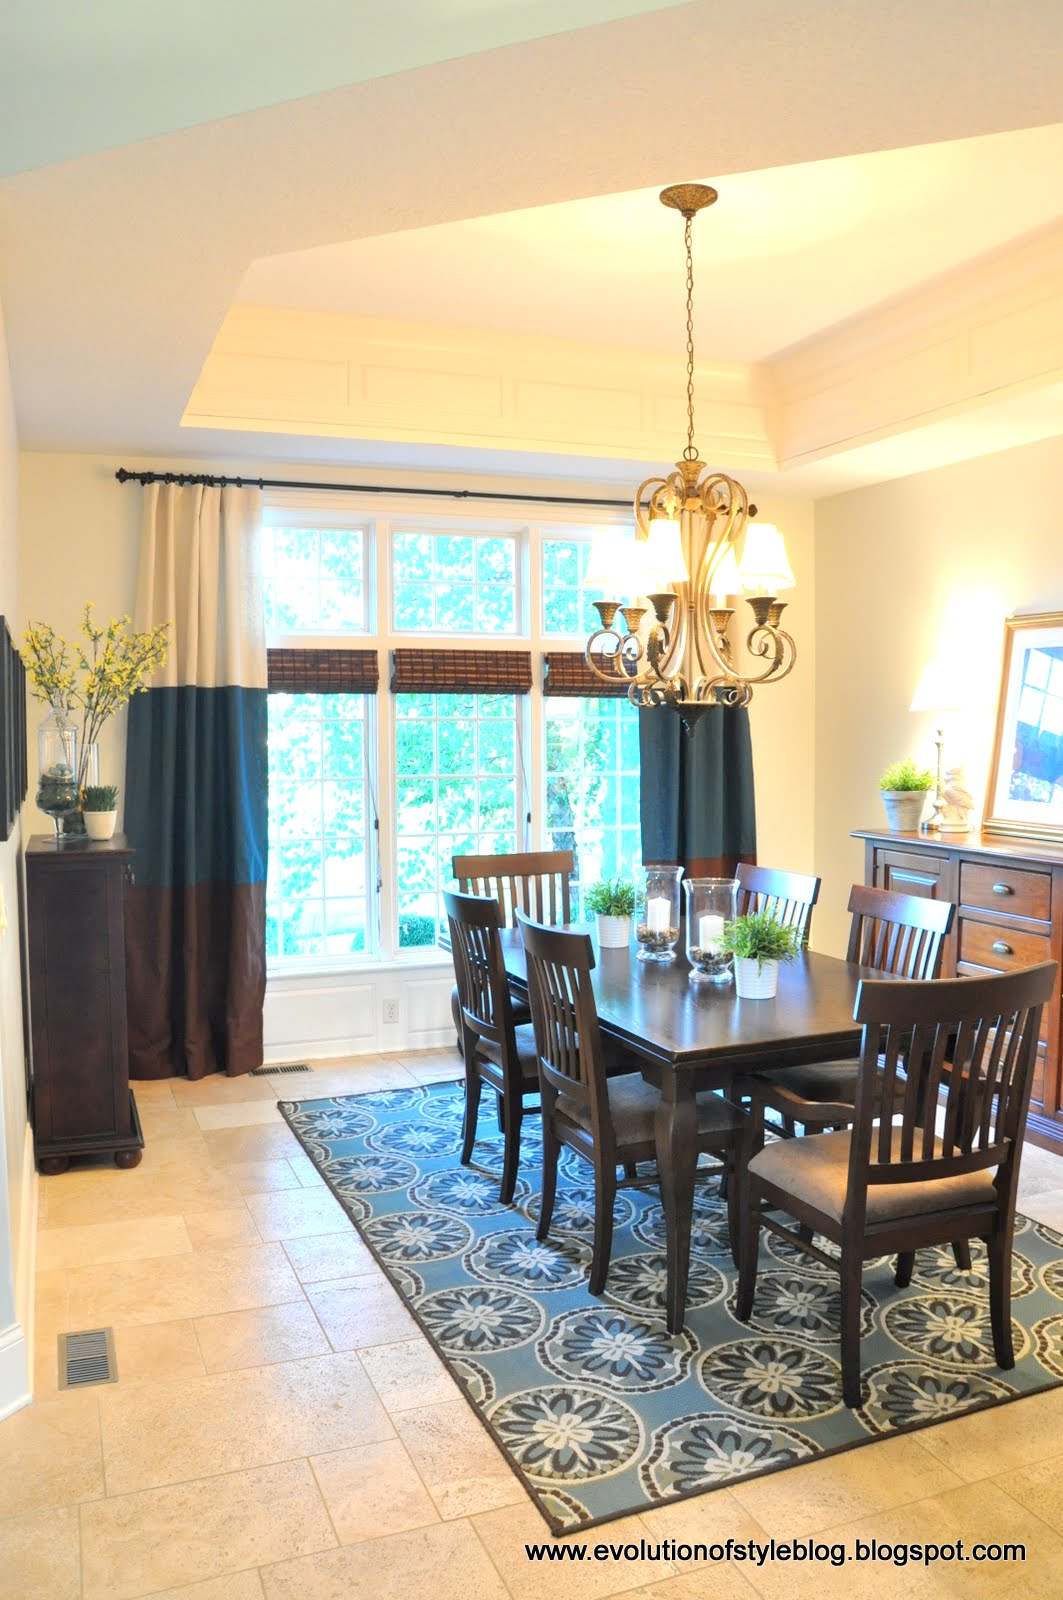 Our paint colors evolution of style for Dining room ideas teal